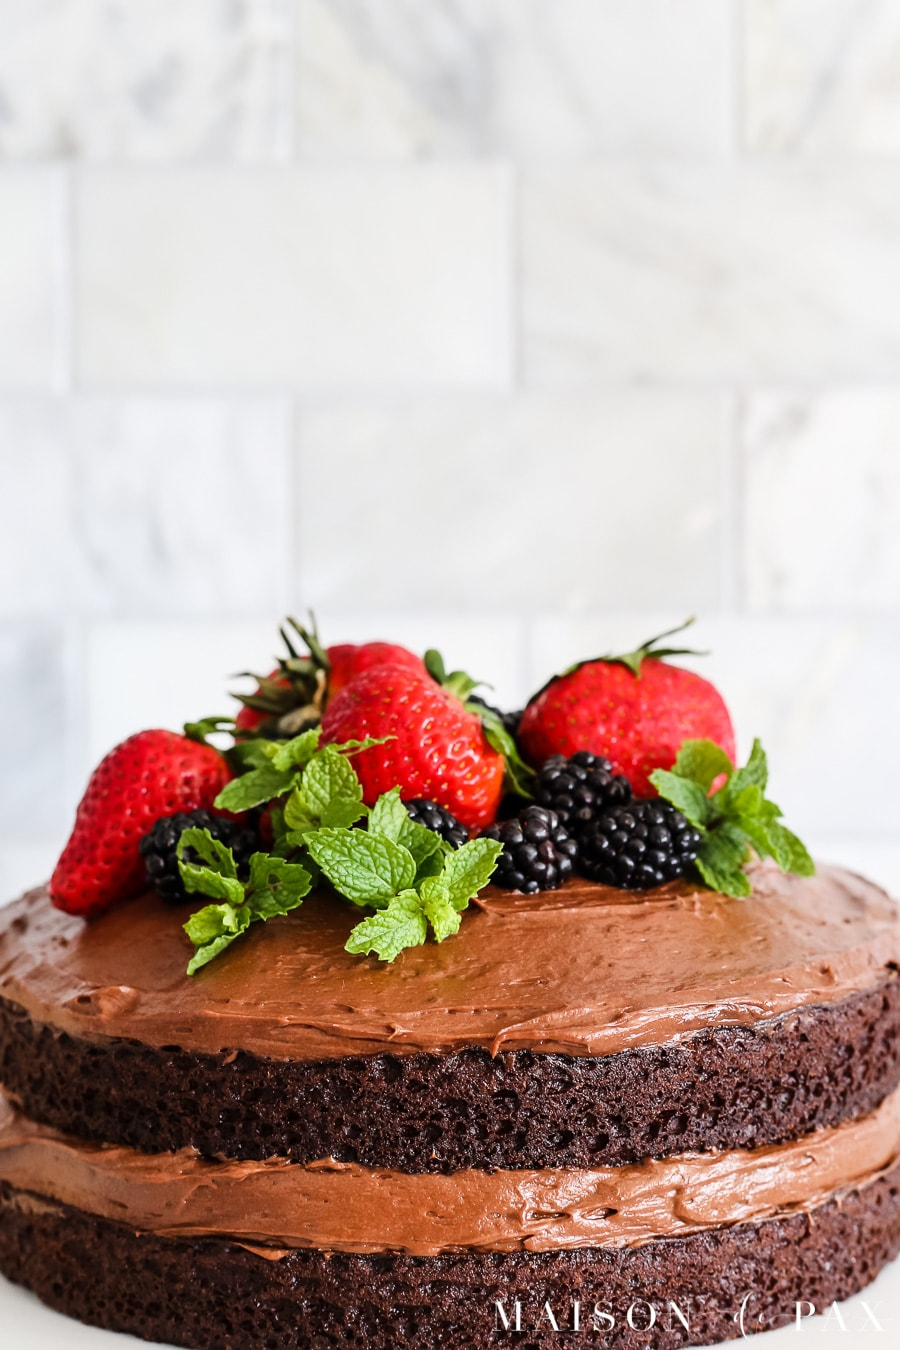 Chocolate naked cake with fruit on top! Learn how to make a naked cake. #nakedcake #nakedcakerecipe #cakefrosting #howtofrost #cakerecipe #creamcheesefrosting #cakedecorating #chocolatecake